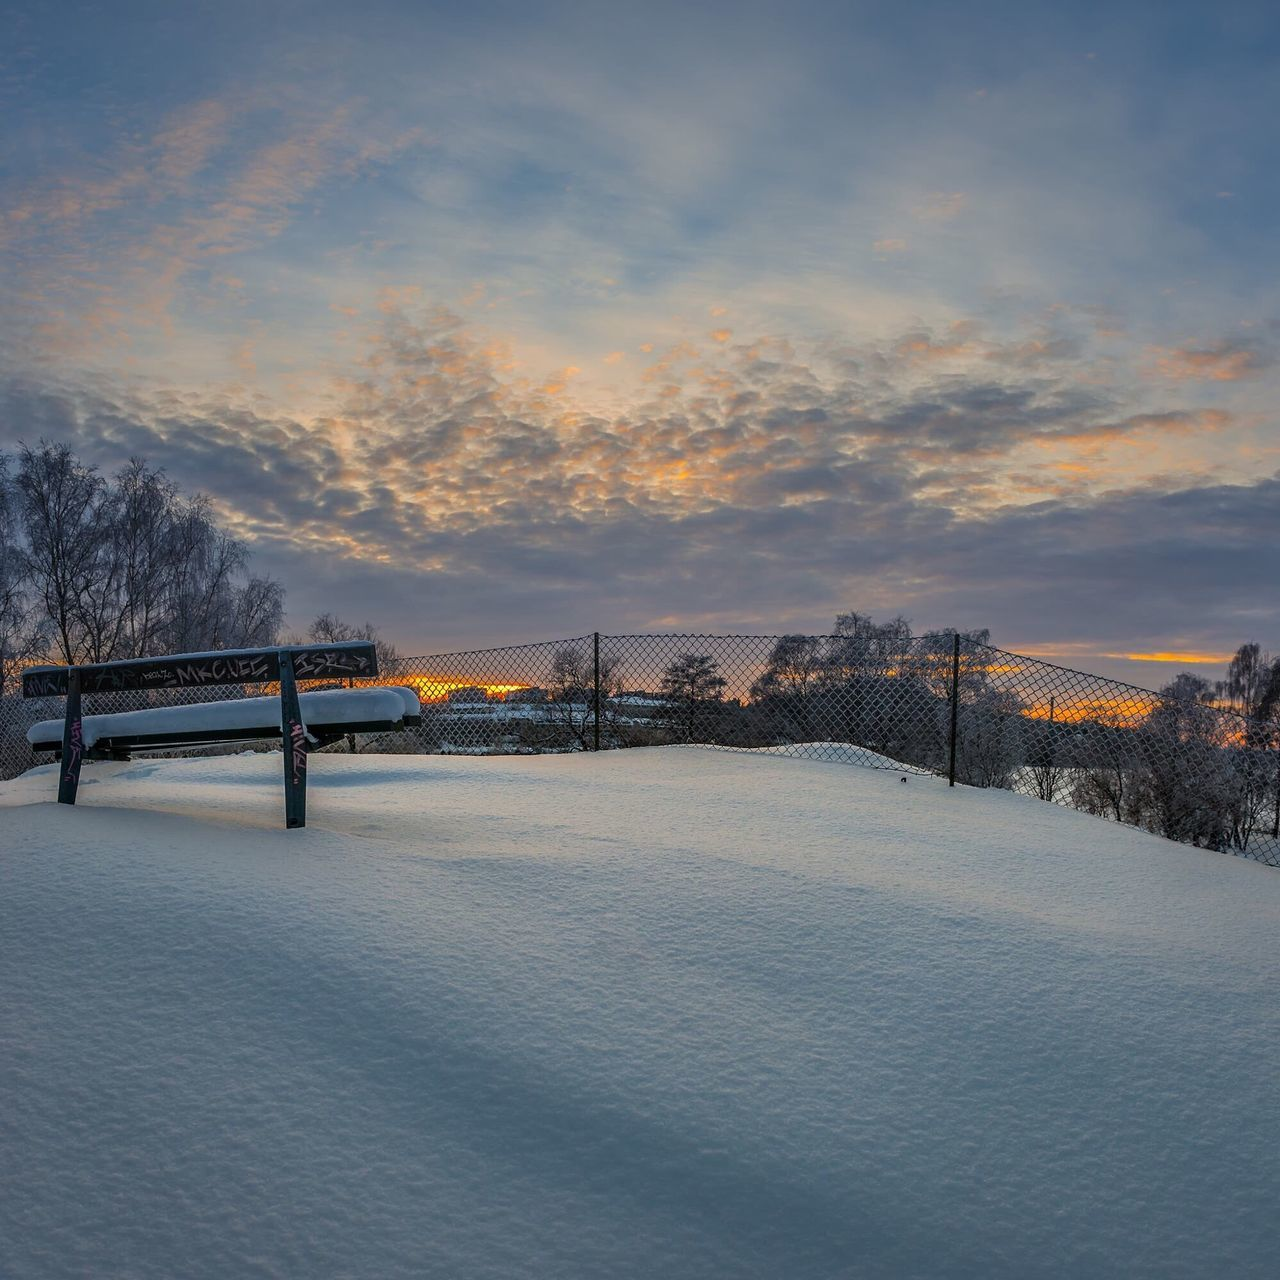 winter, cold temperature, snow, weather, sunset, bridge - man made structure, sky, nature, ice, frozen, architecture, outdoors, built structure, beauty in nature, no people, scenics, cloud - sky, landscape, ice-skating, building exterior, tree, day, city, ice rink